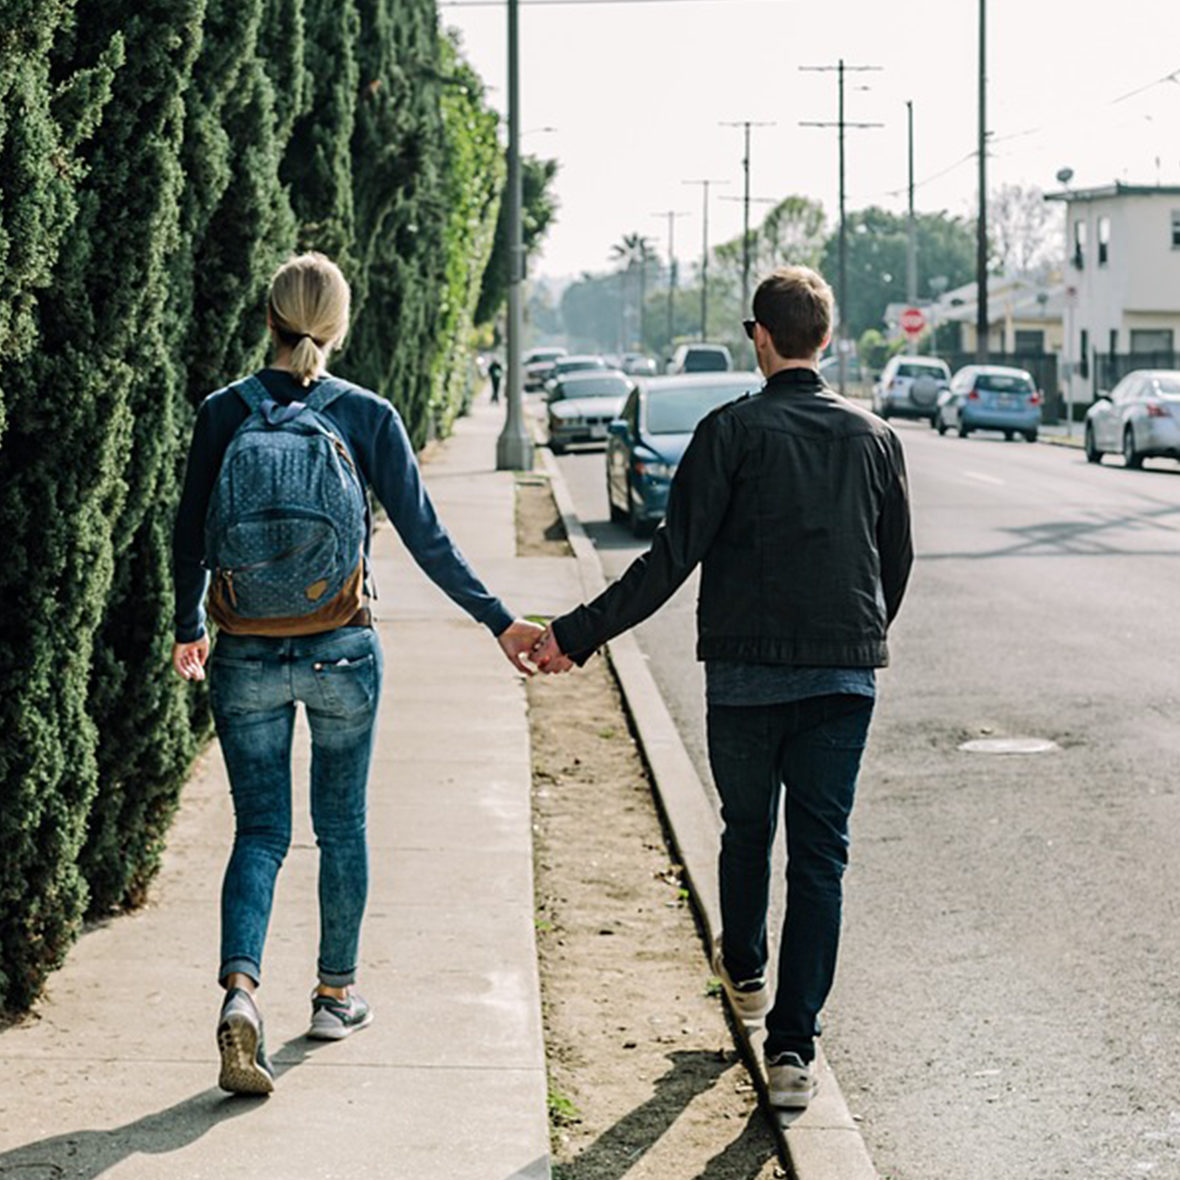 Woman with backpack on sidewalk and man on curb walking holding hands.